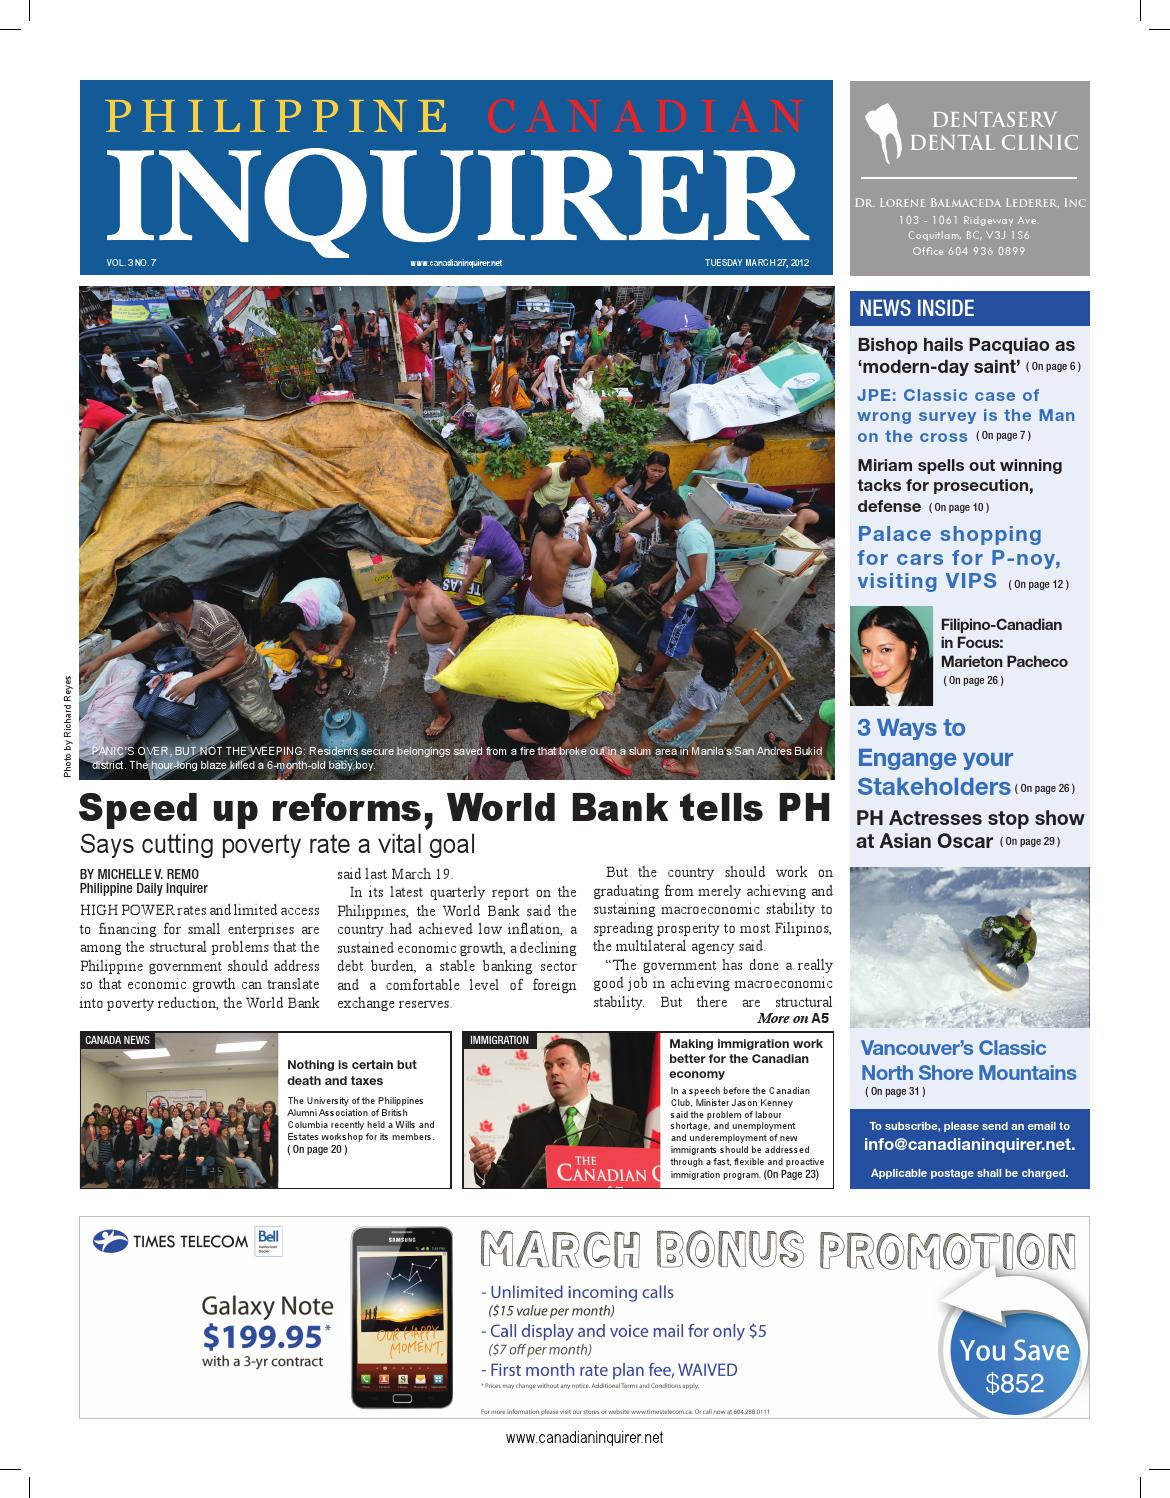 Philippine Canadian Inquirer Issue #7